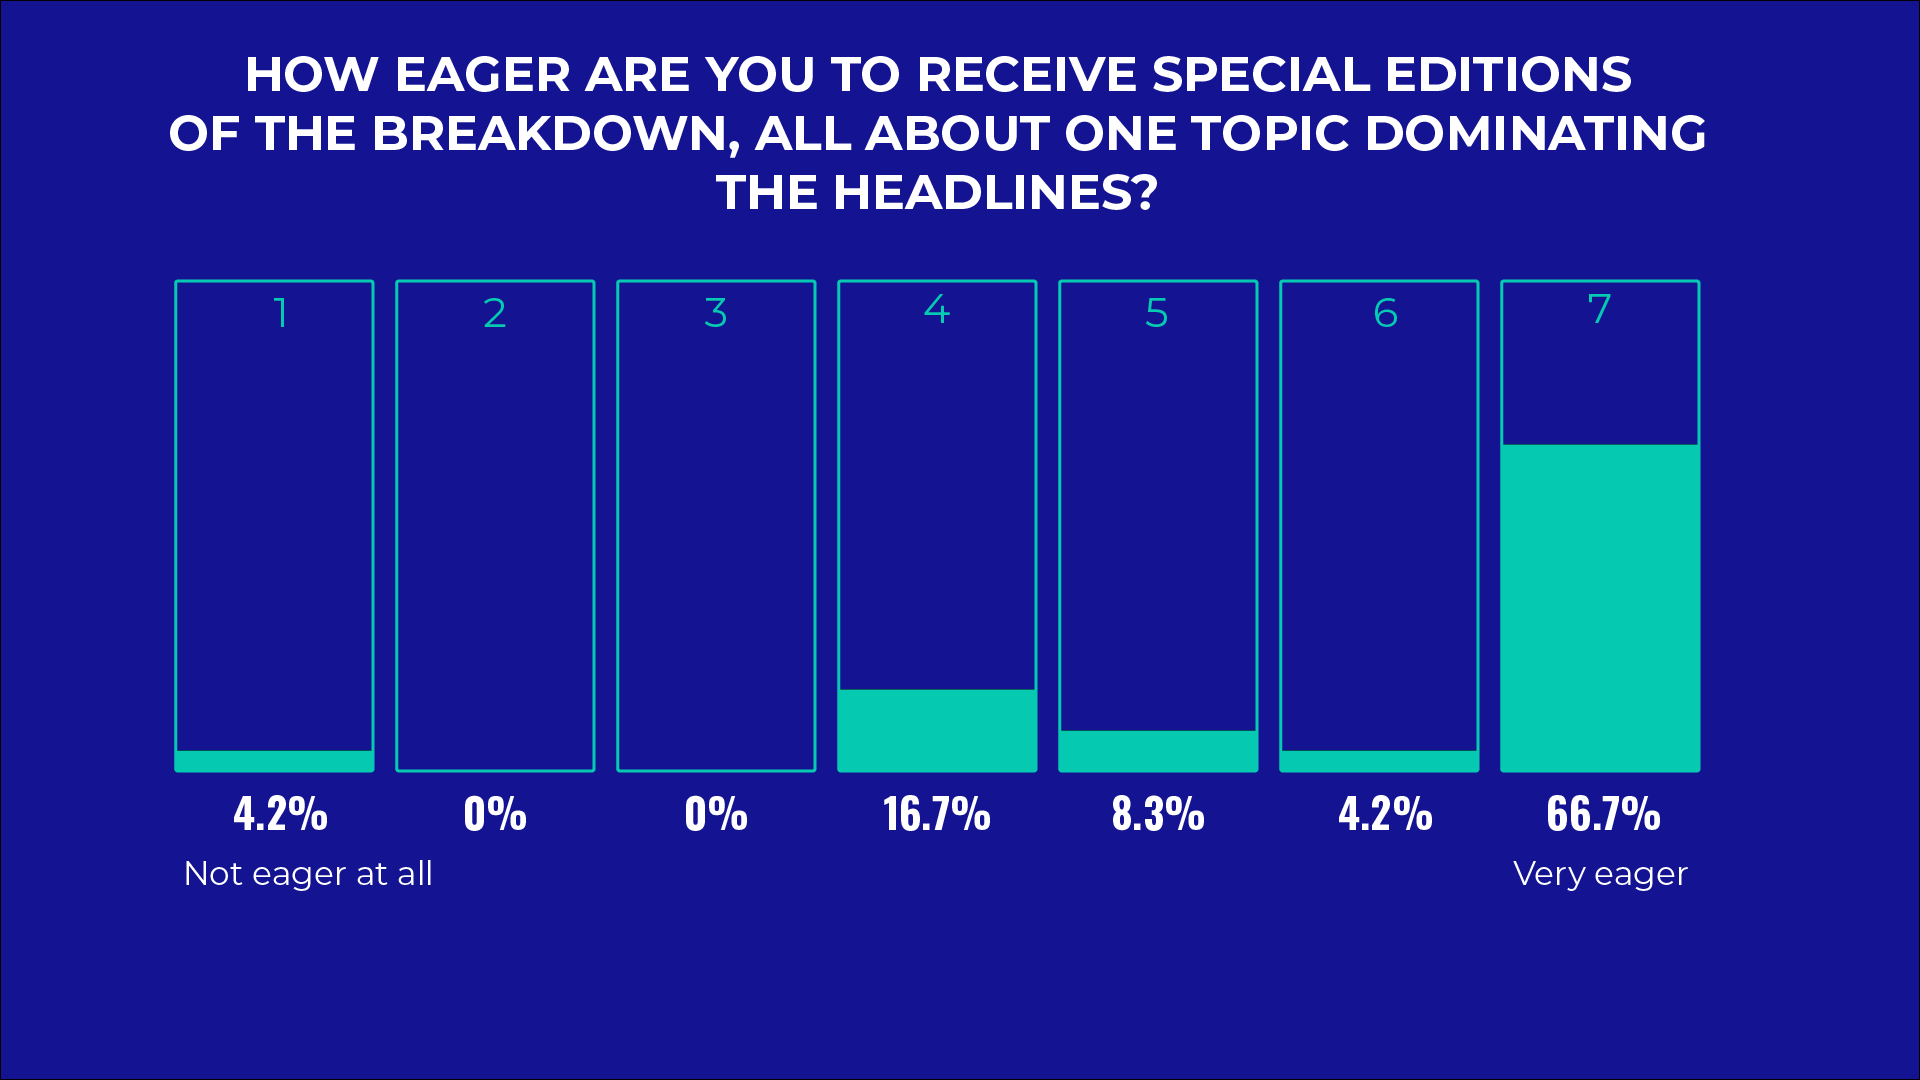 Breakdown readers are VERY eager to receive Special Edition Breakdowns!